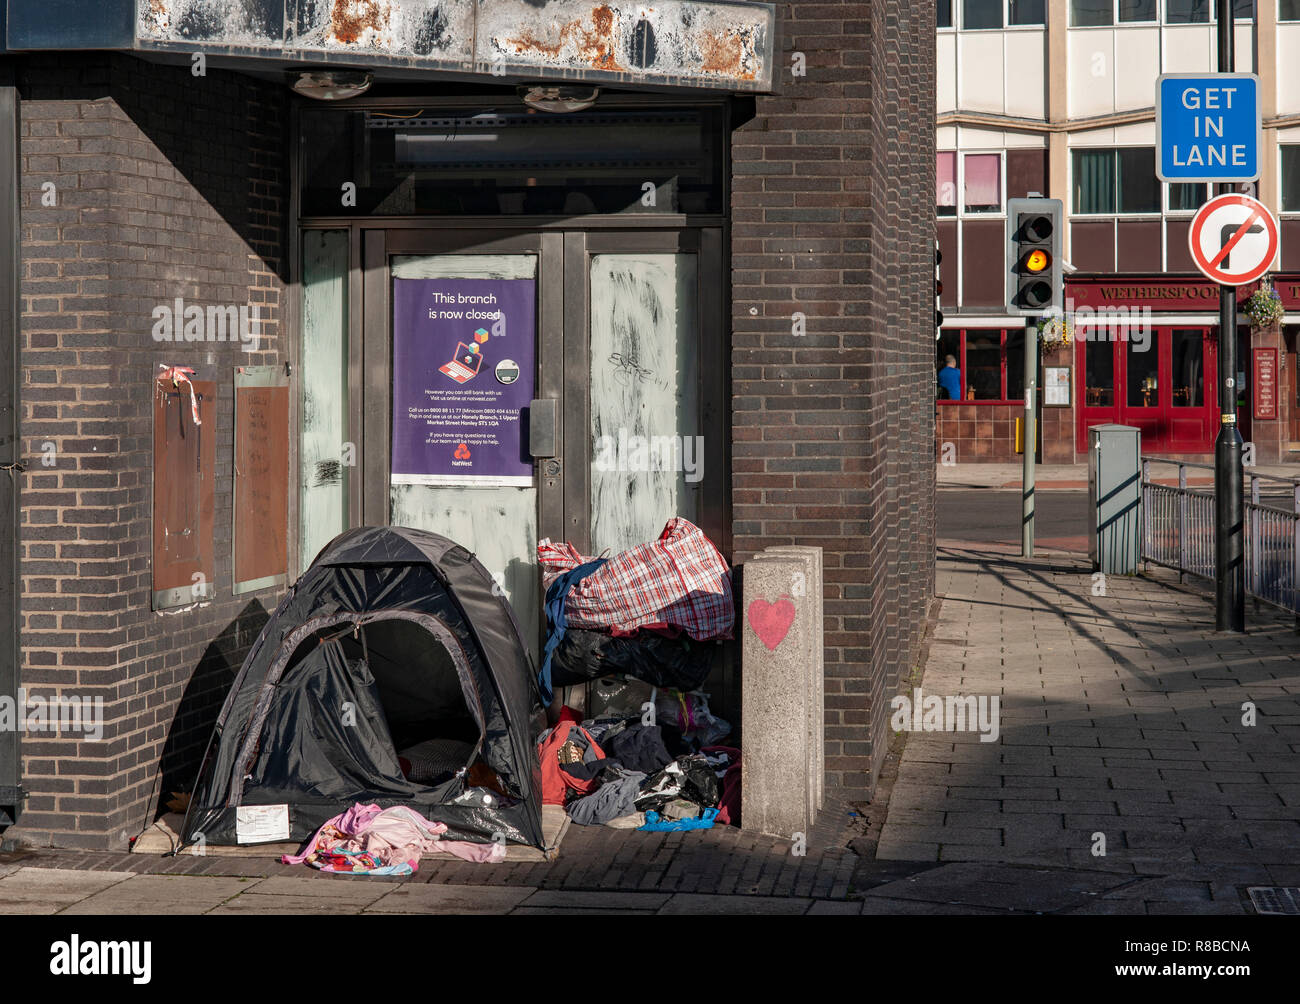 Tent of Homeless person in doorway of closed down Bank, centre of Stoke on Trent - Stock Image